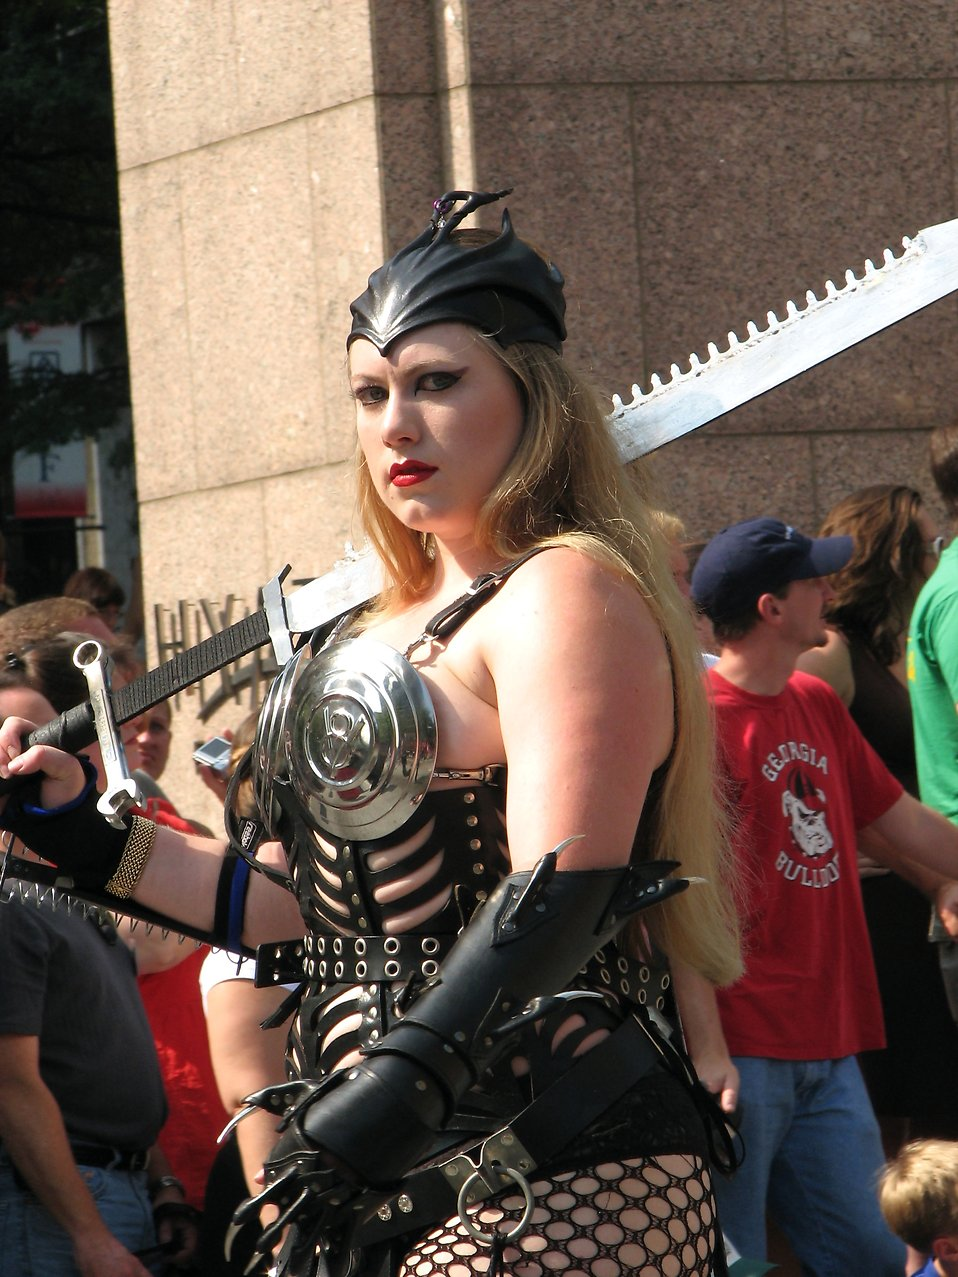 Tall blonde woman in barbarian costume in the 2008 Dragoncon parade : Free Stock Photo